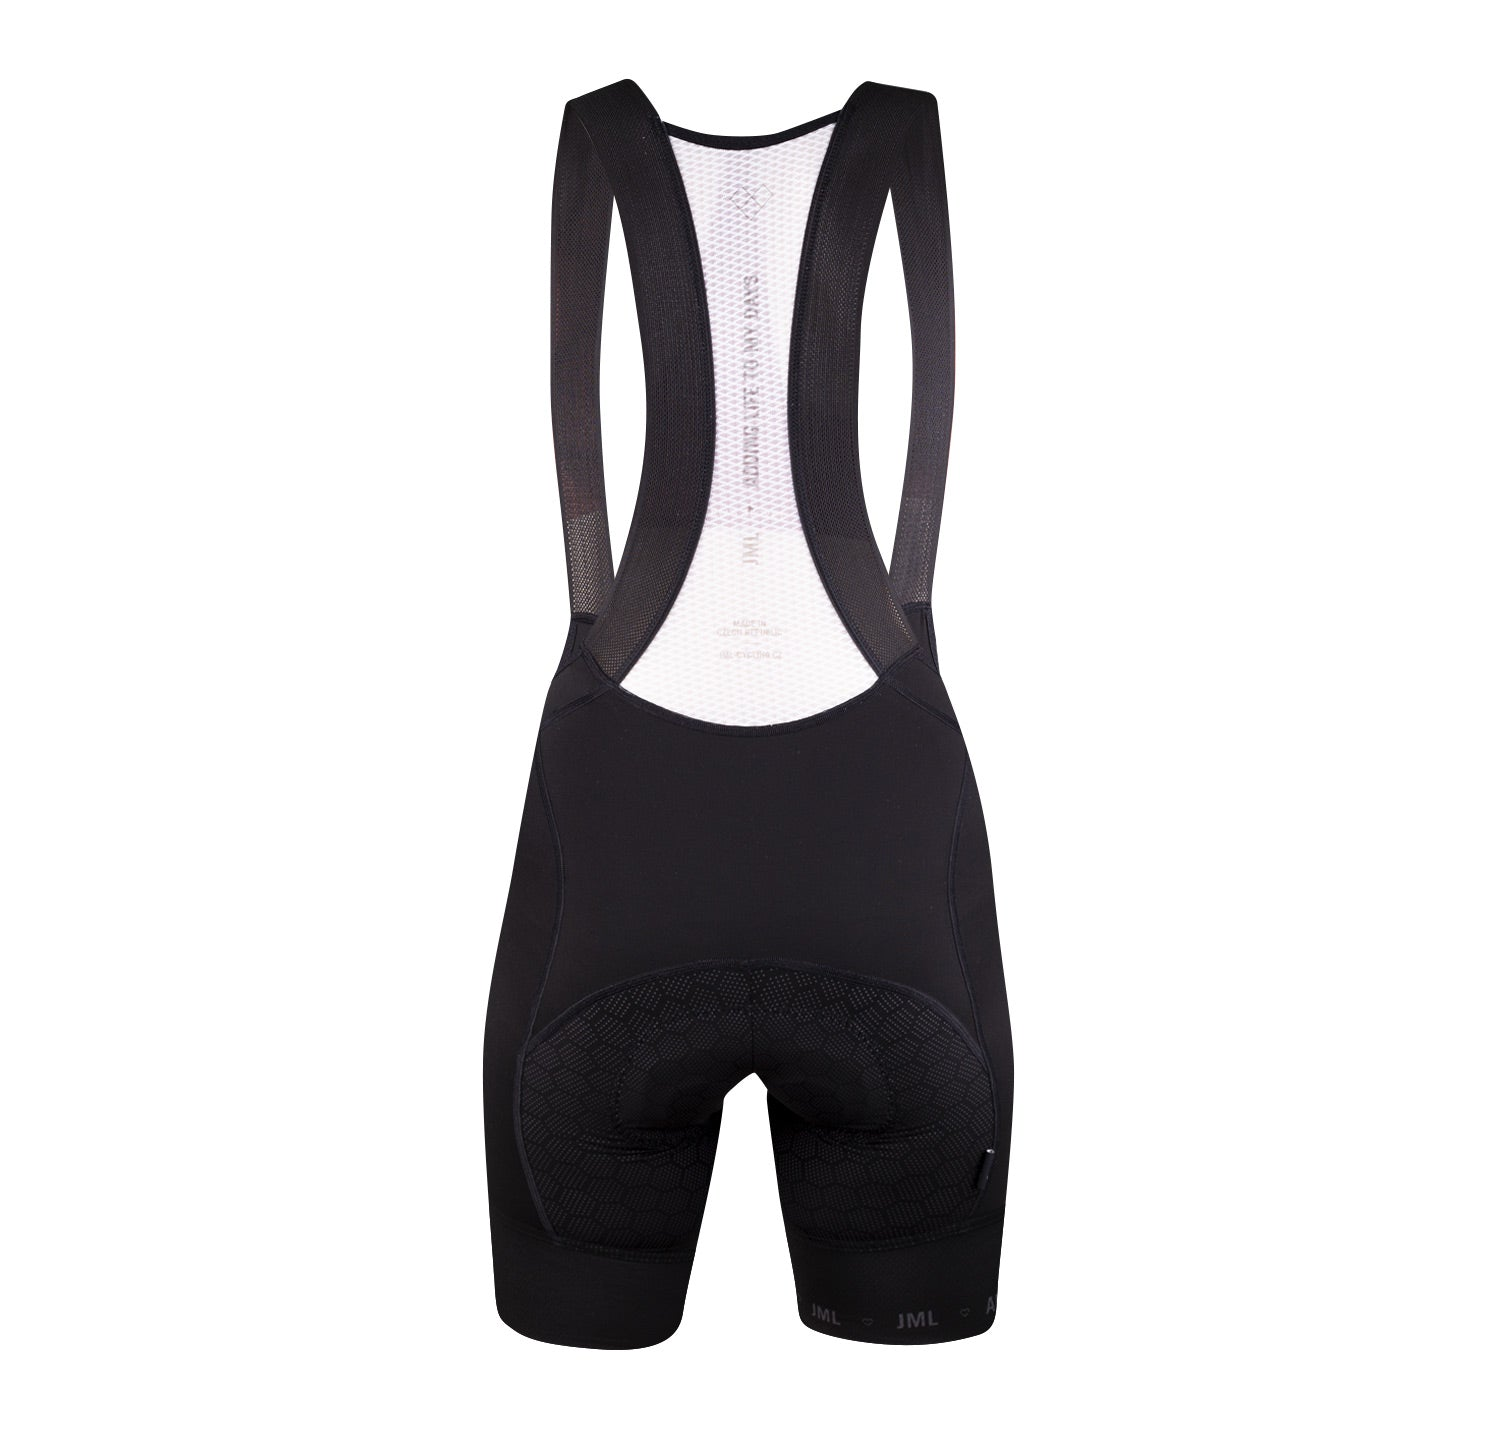 JML One W Bib Shorts - Jerseys Made with Love